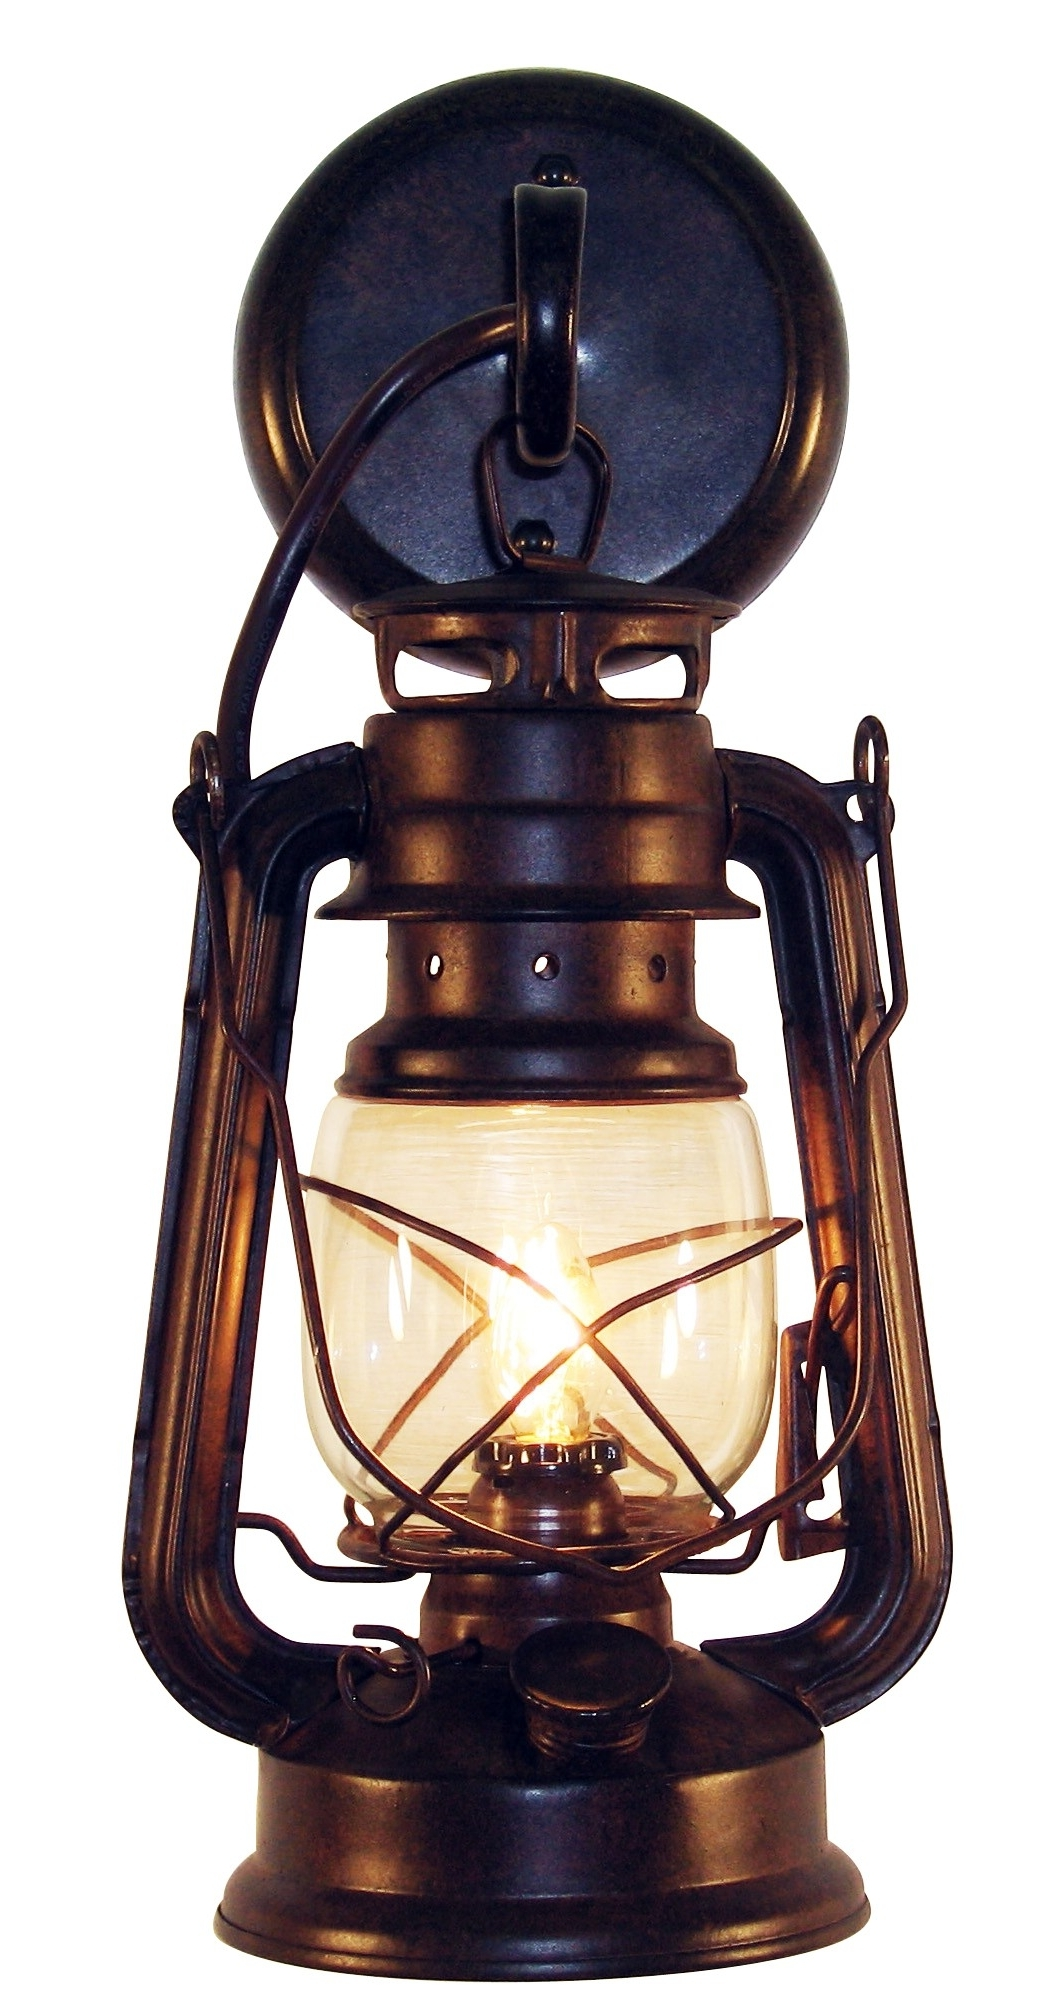 Outdoor Rustic Lanterns In Latest Small Rustic Lantern Wall Sconce (View 10 of 20)